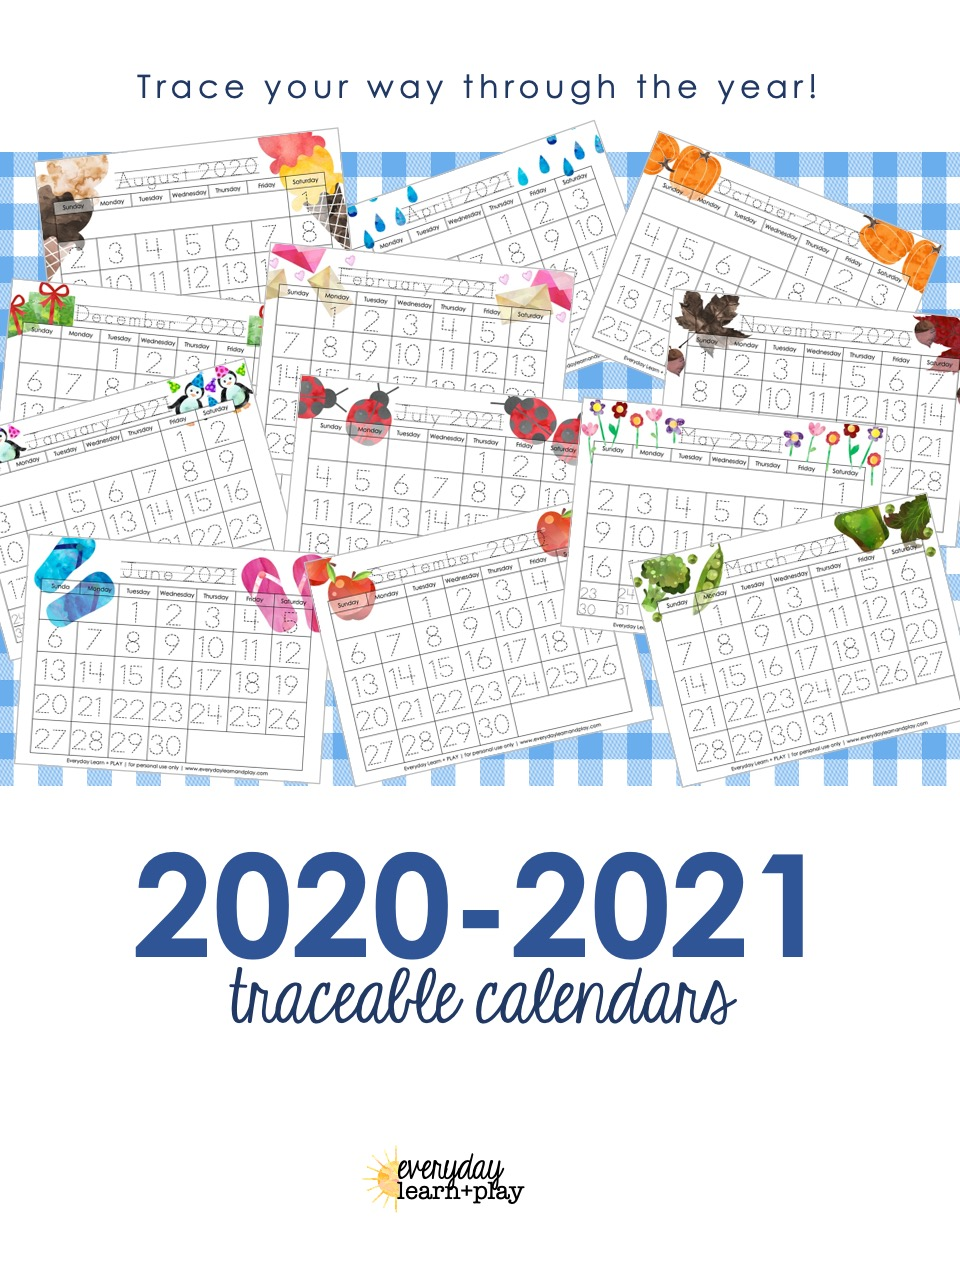 2020-2021 Traceable Calendars | | Everyday Learn and Play